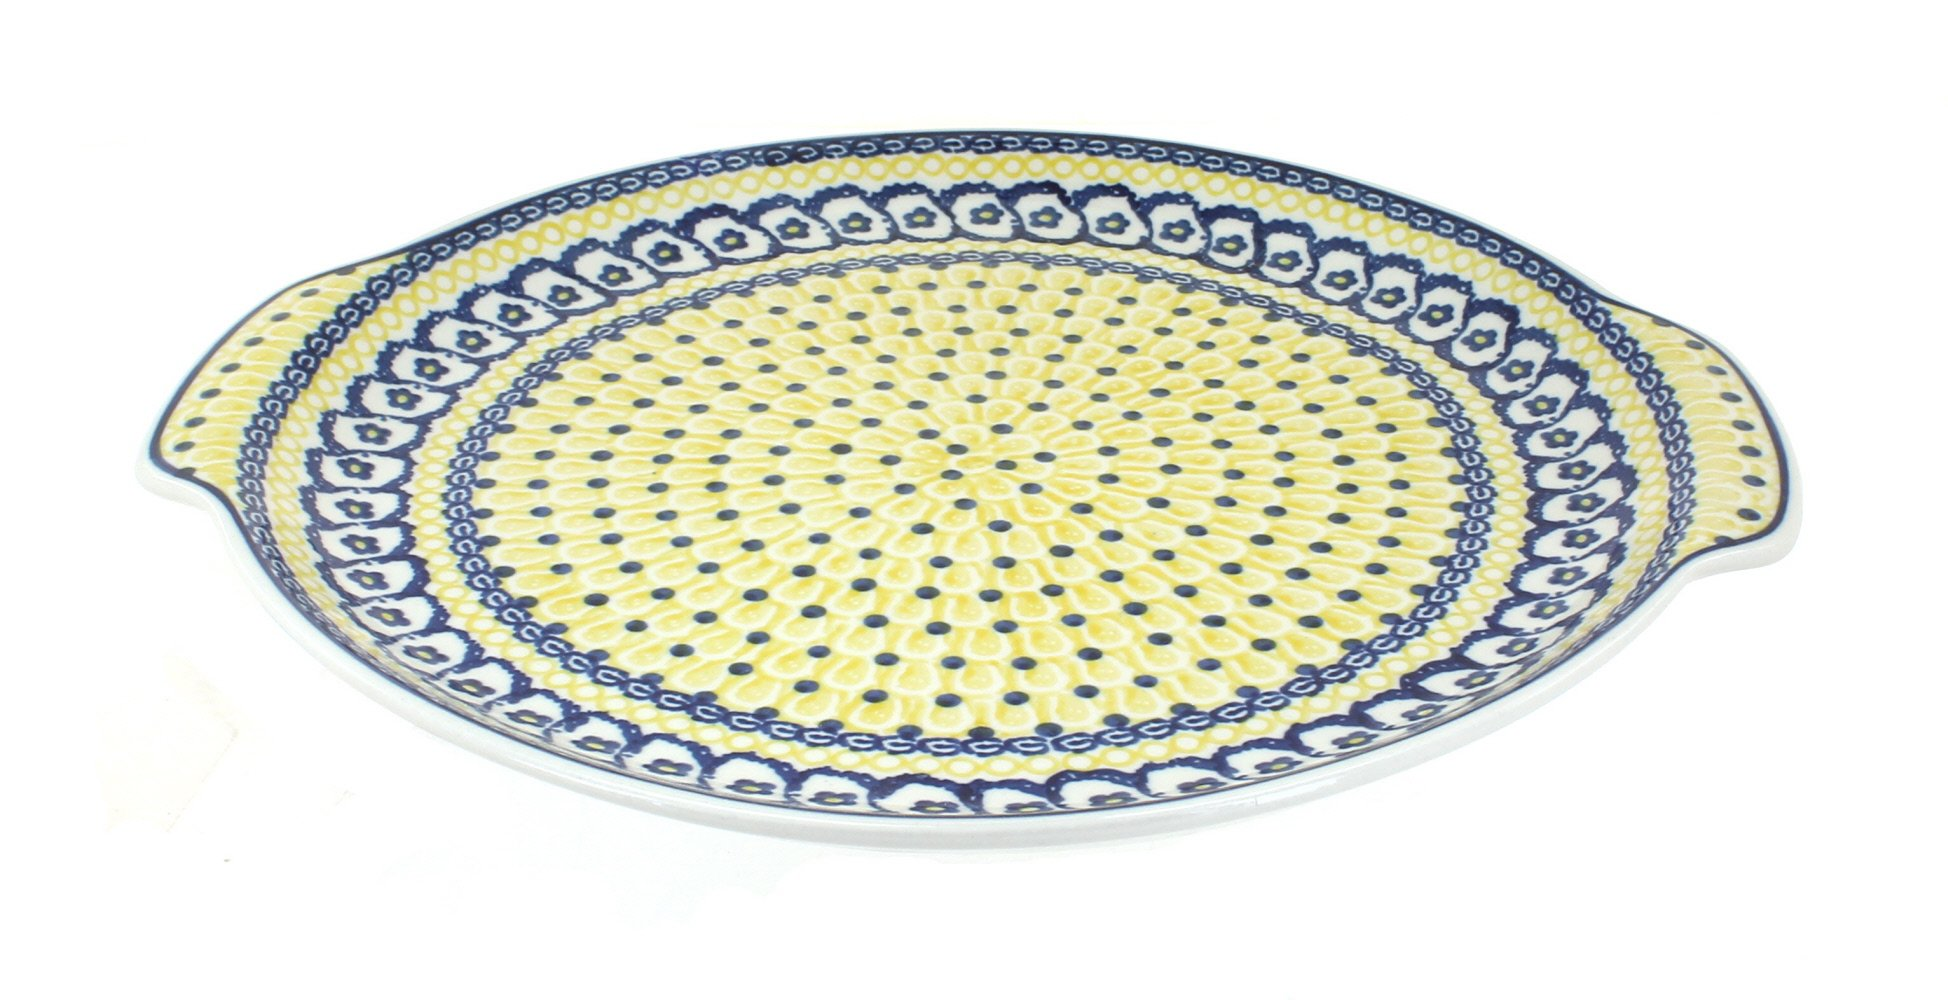 Polish Pottery Saffron Round Serving Tray with Handles